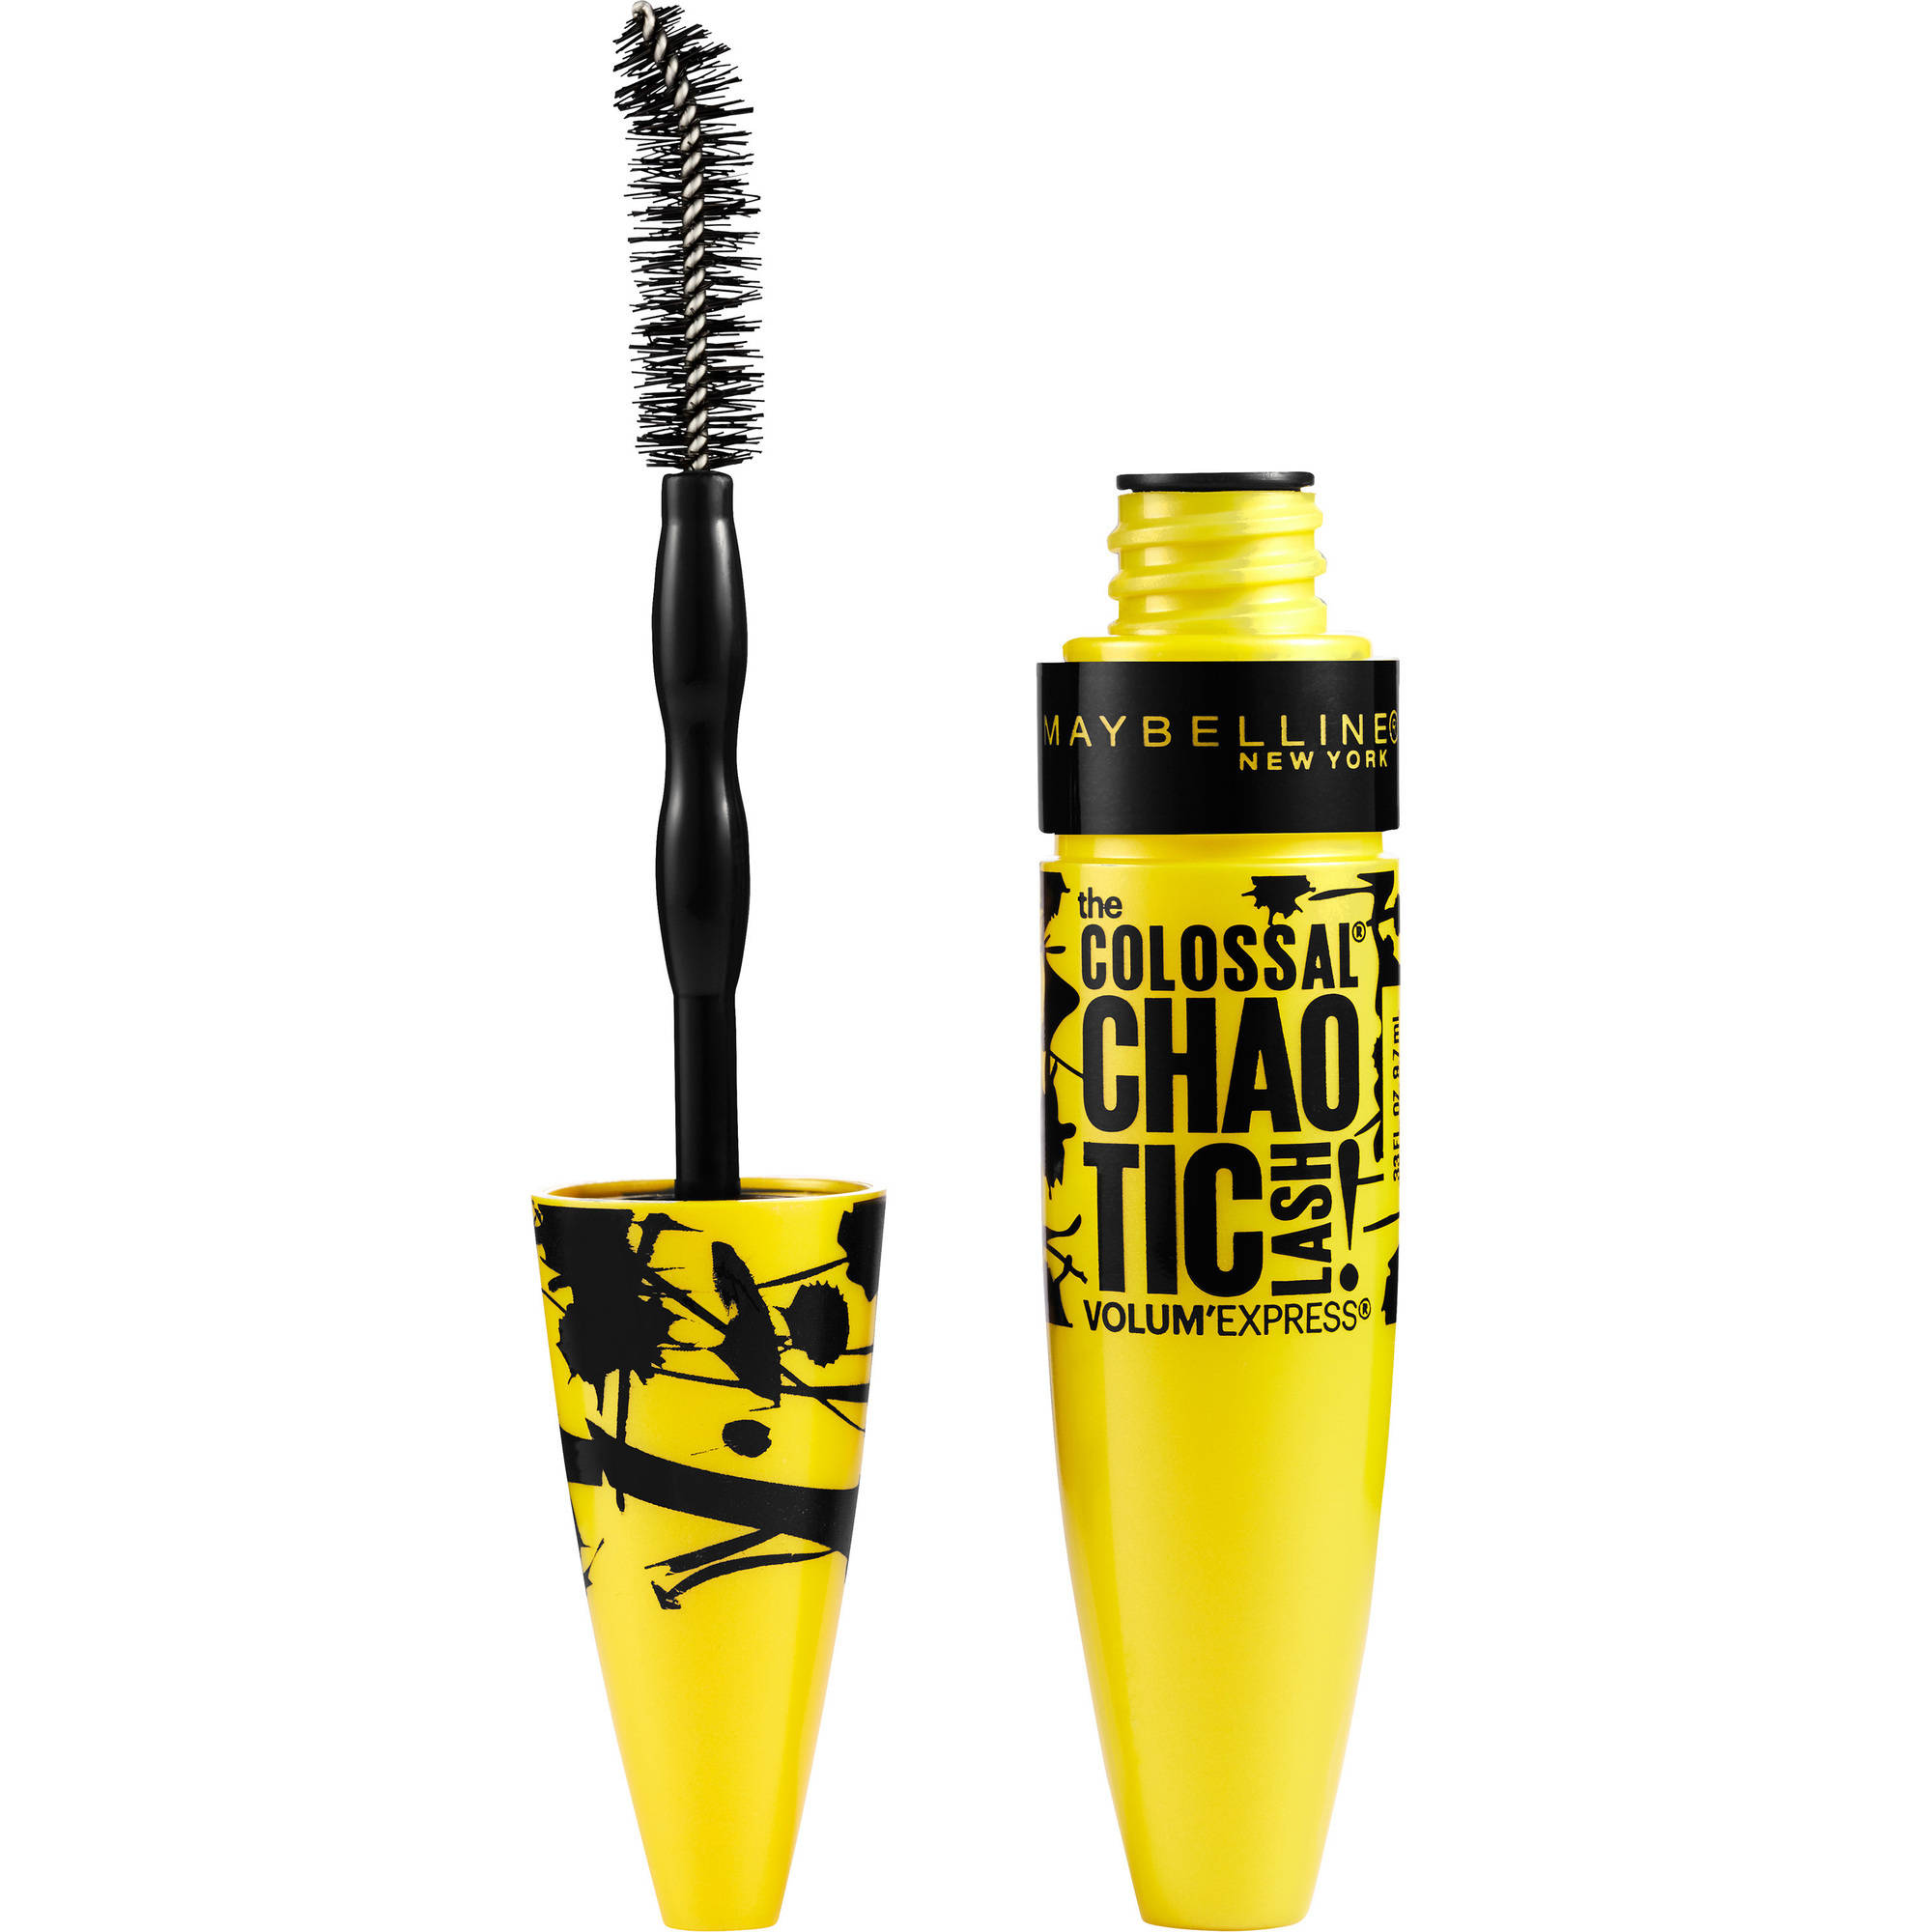 Maybelline New York Volum'Express the Colossal Chaotic Lash Mascara, 218 Blackest Noir, 0.33 fl oz